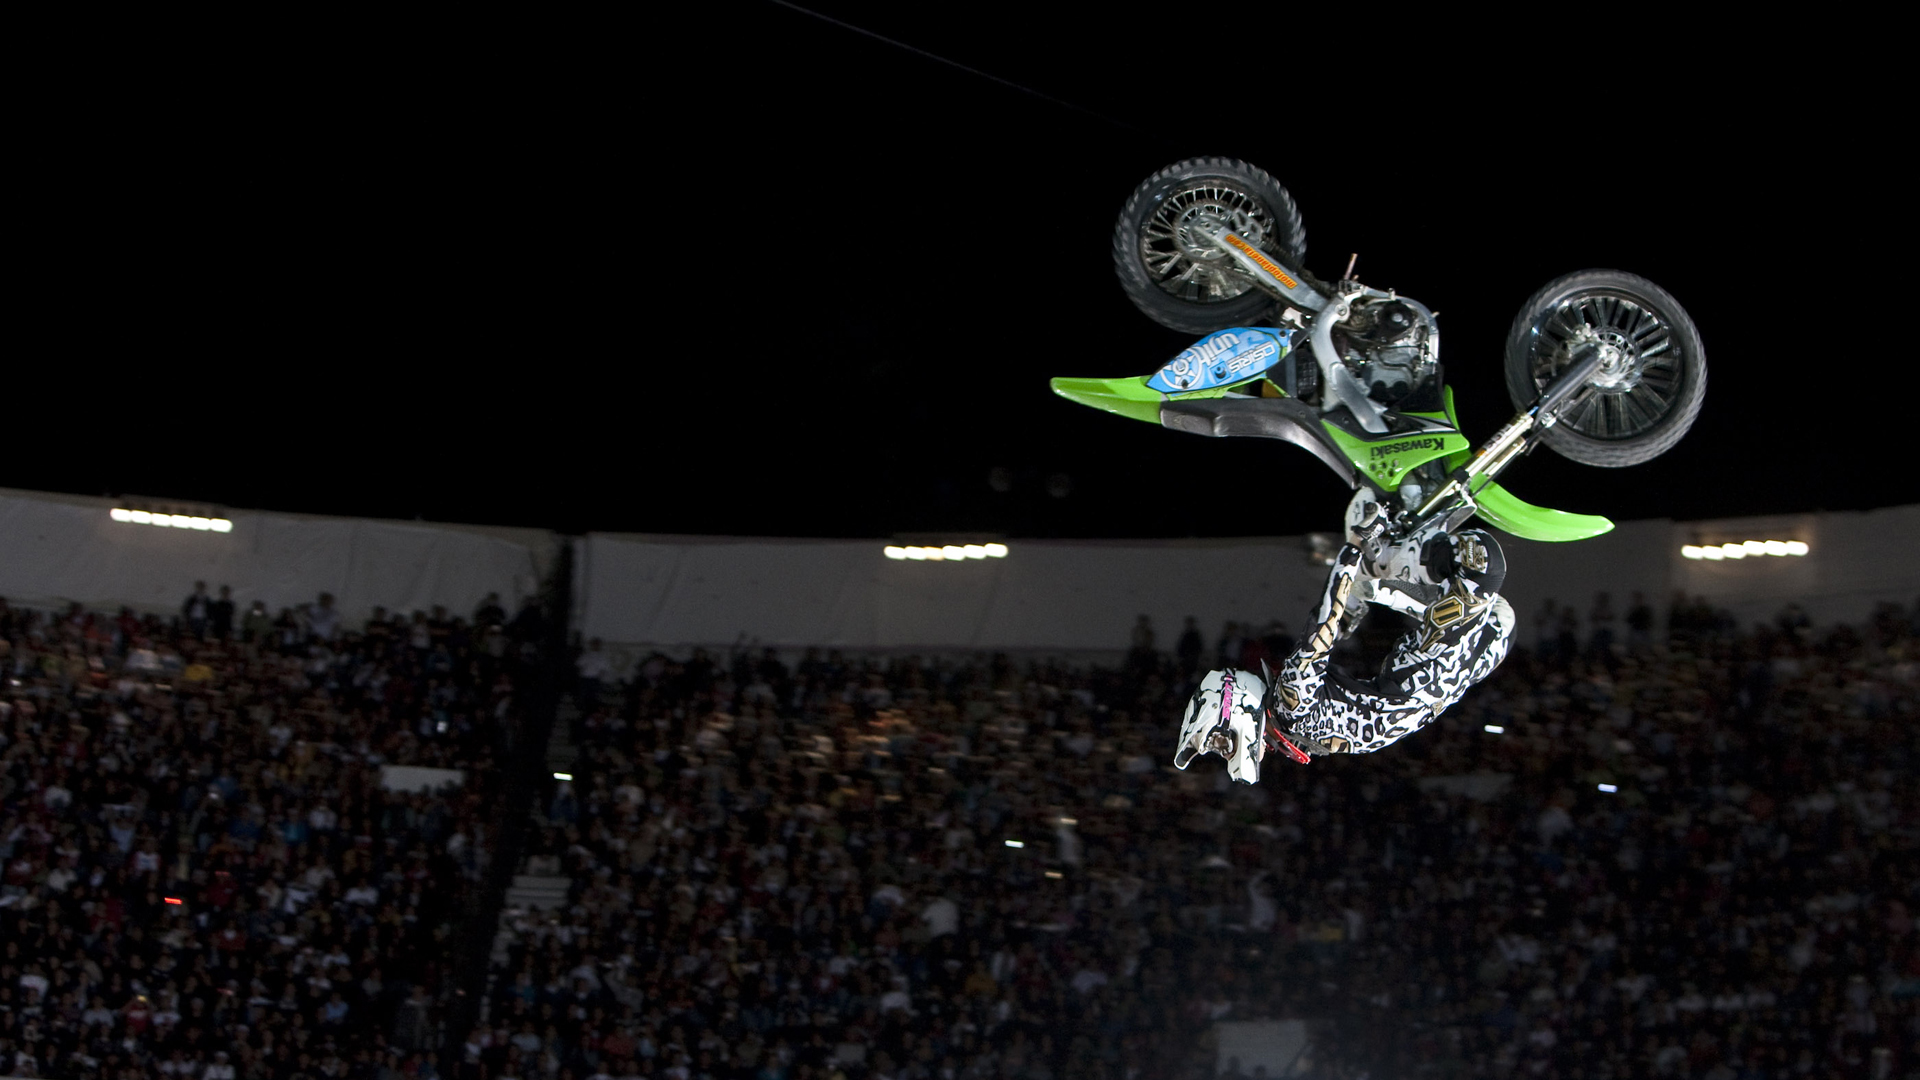 motorbikes x-games HD Wallpaper